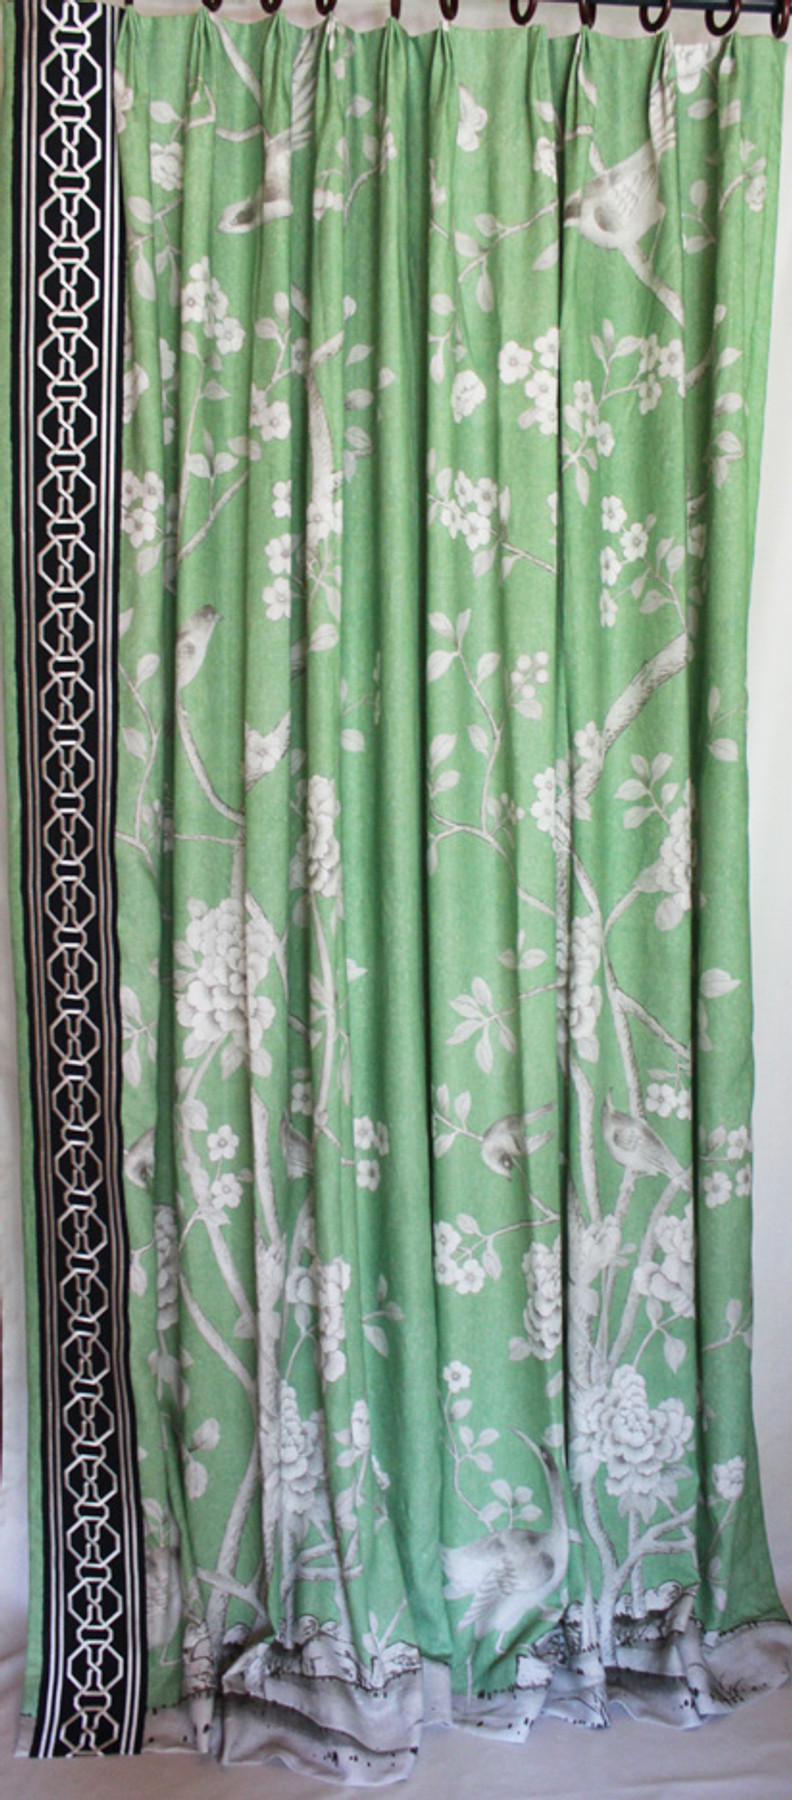 Custom Fan Pleated Drapes by Lynn Chalk in Mary McDonald Chinois Palais in Lettuce with Malmaison Trim in Noir/Swan